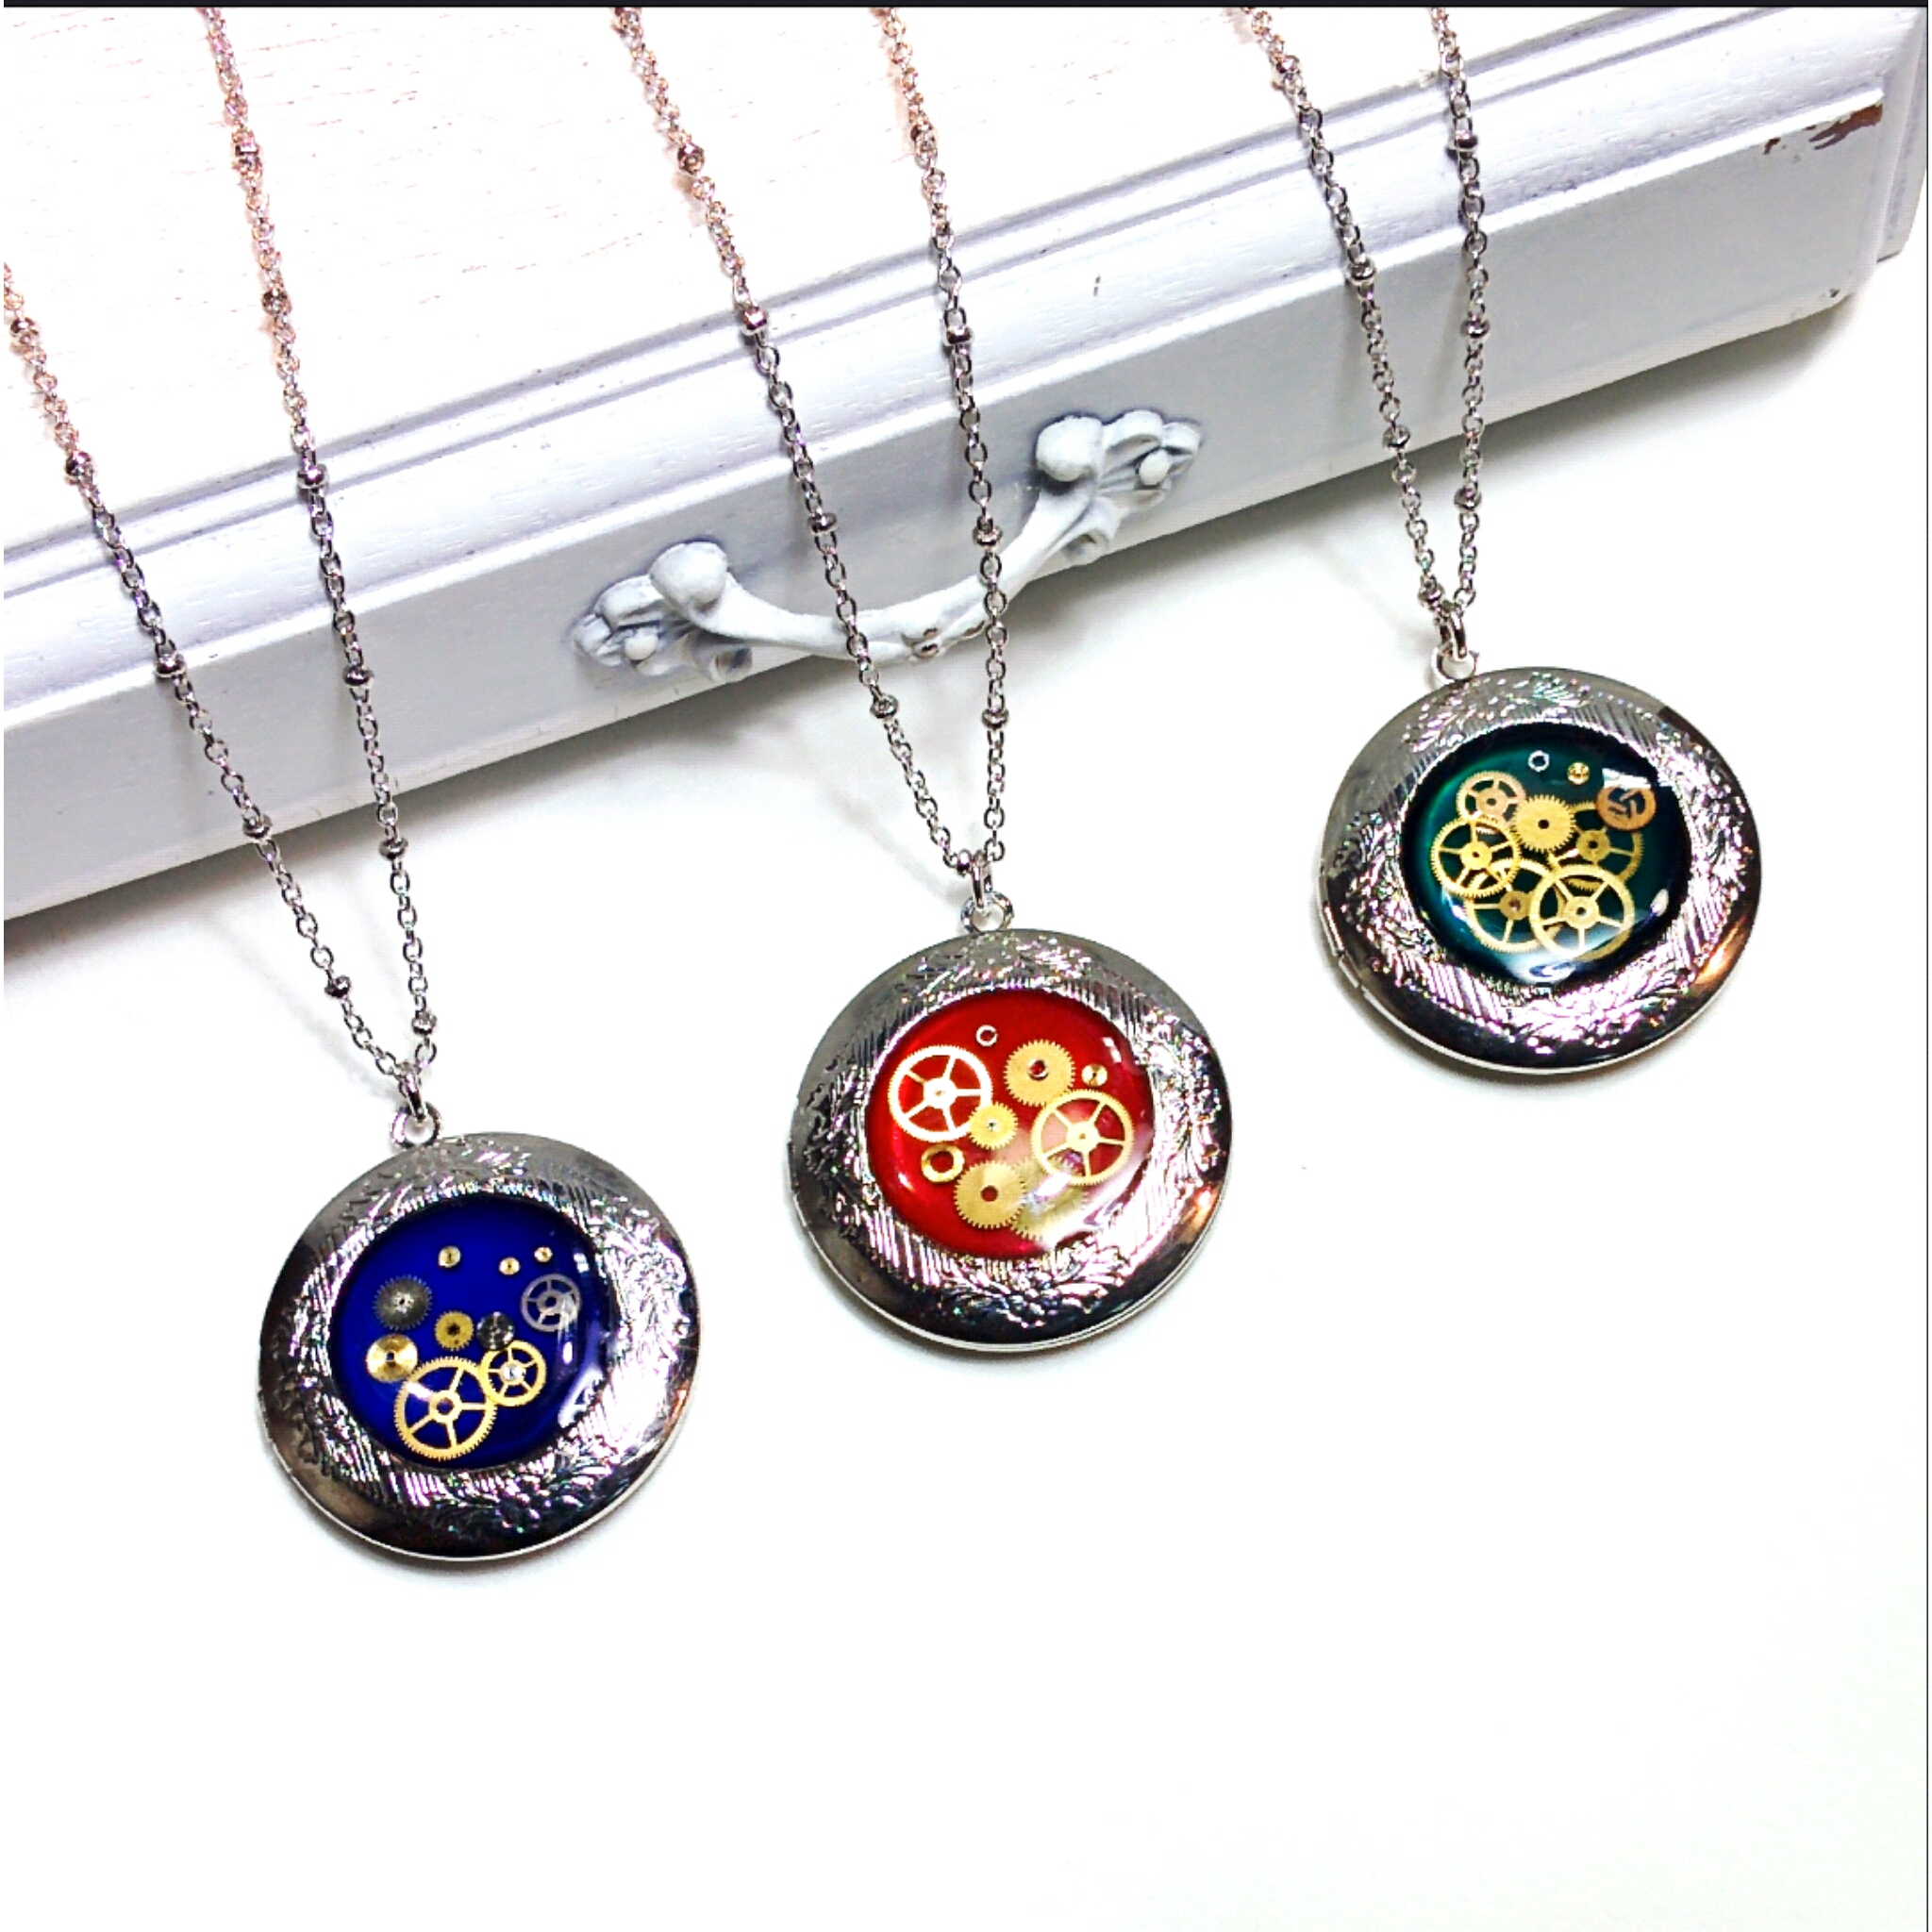 1 inch watch case lockets are new this season!